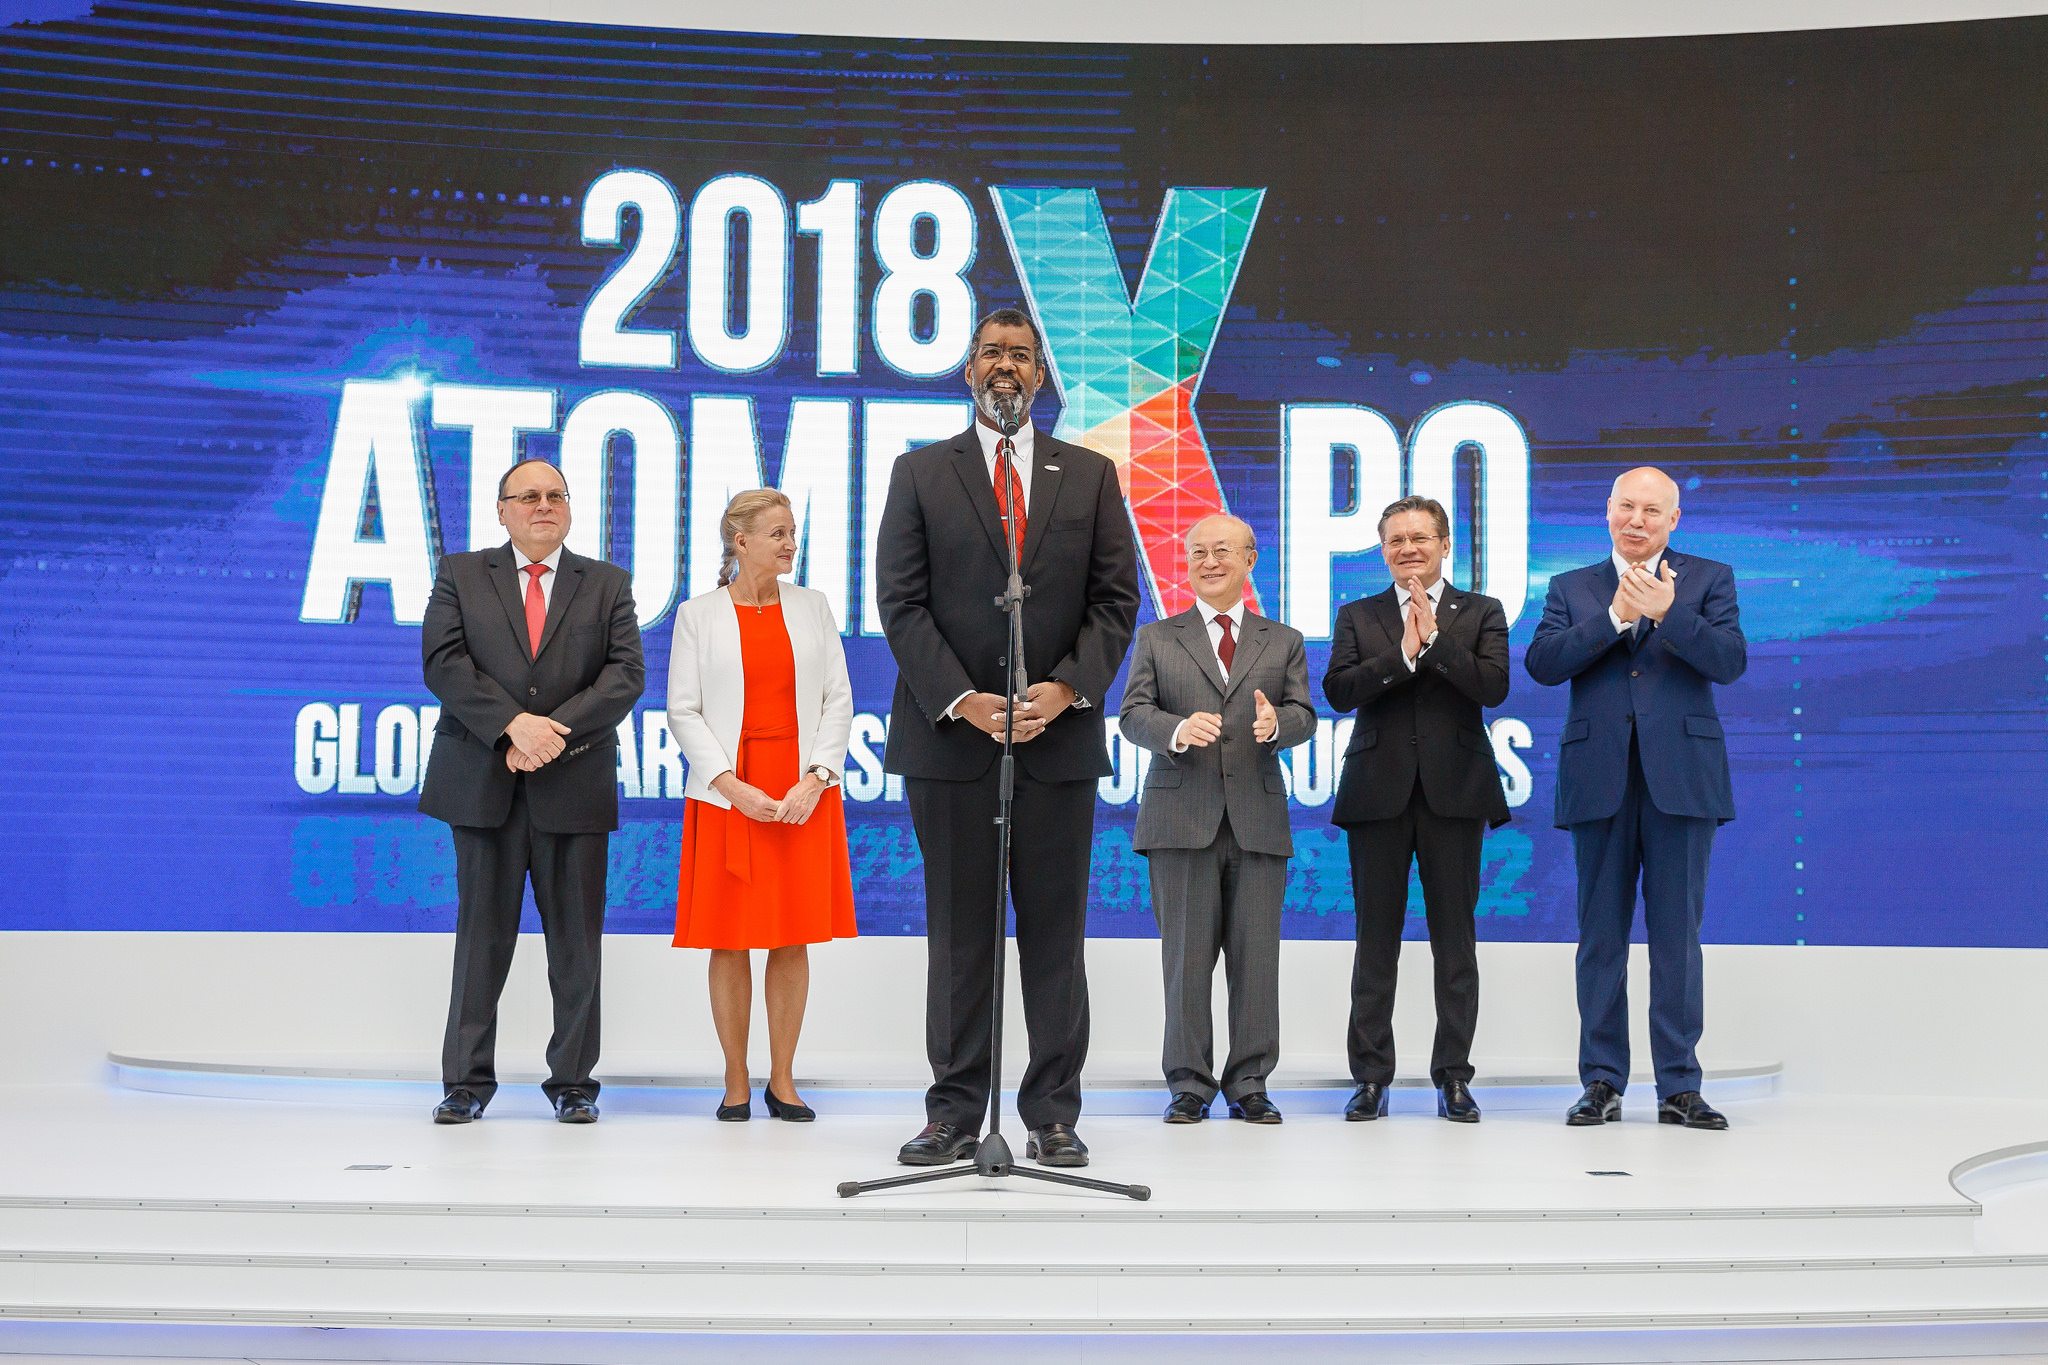 ATOMEXPO 2018 concluded in Sochi with record participation